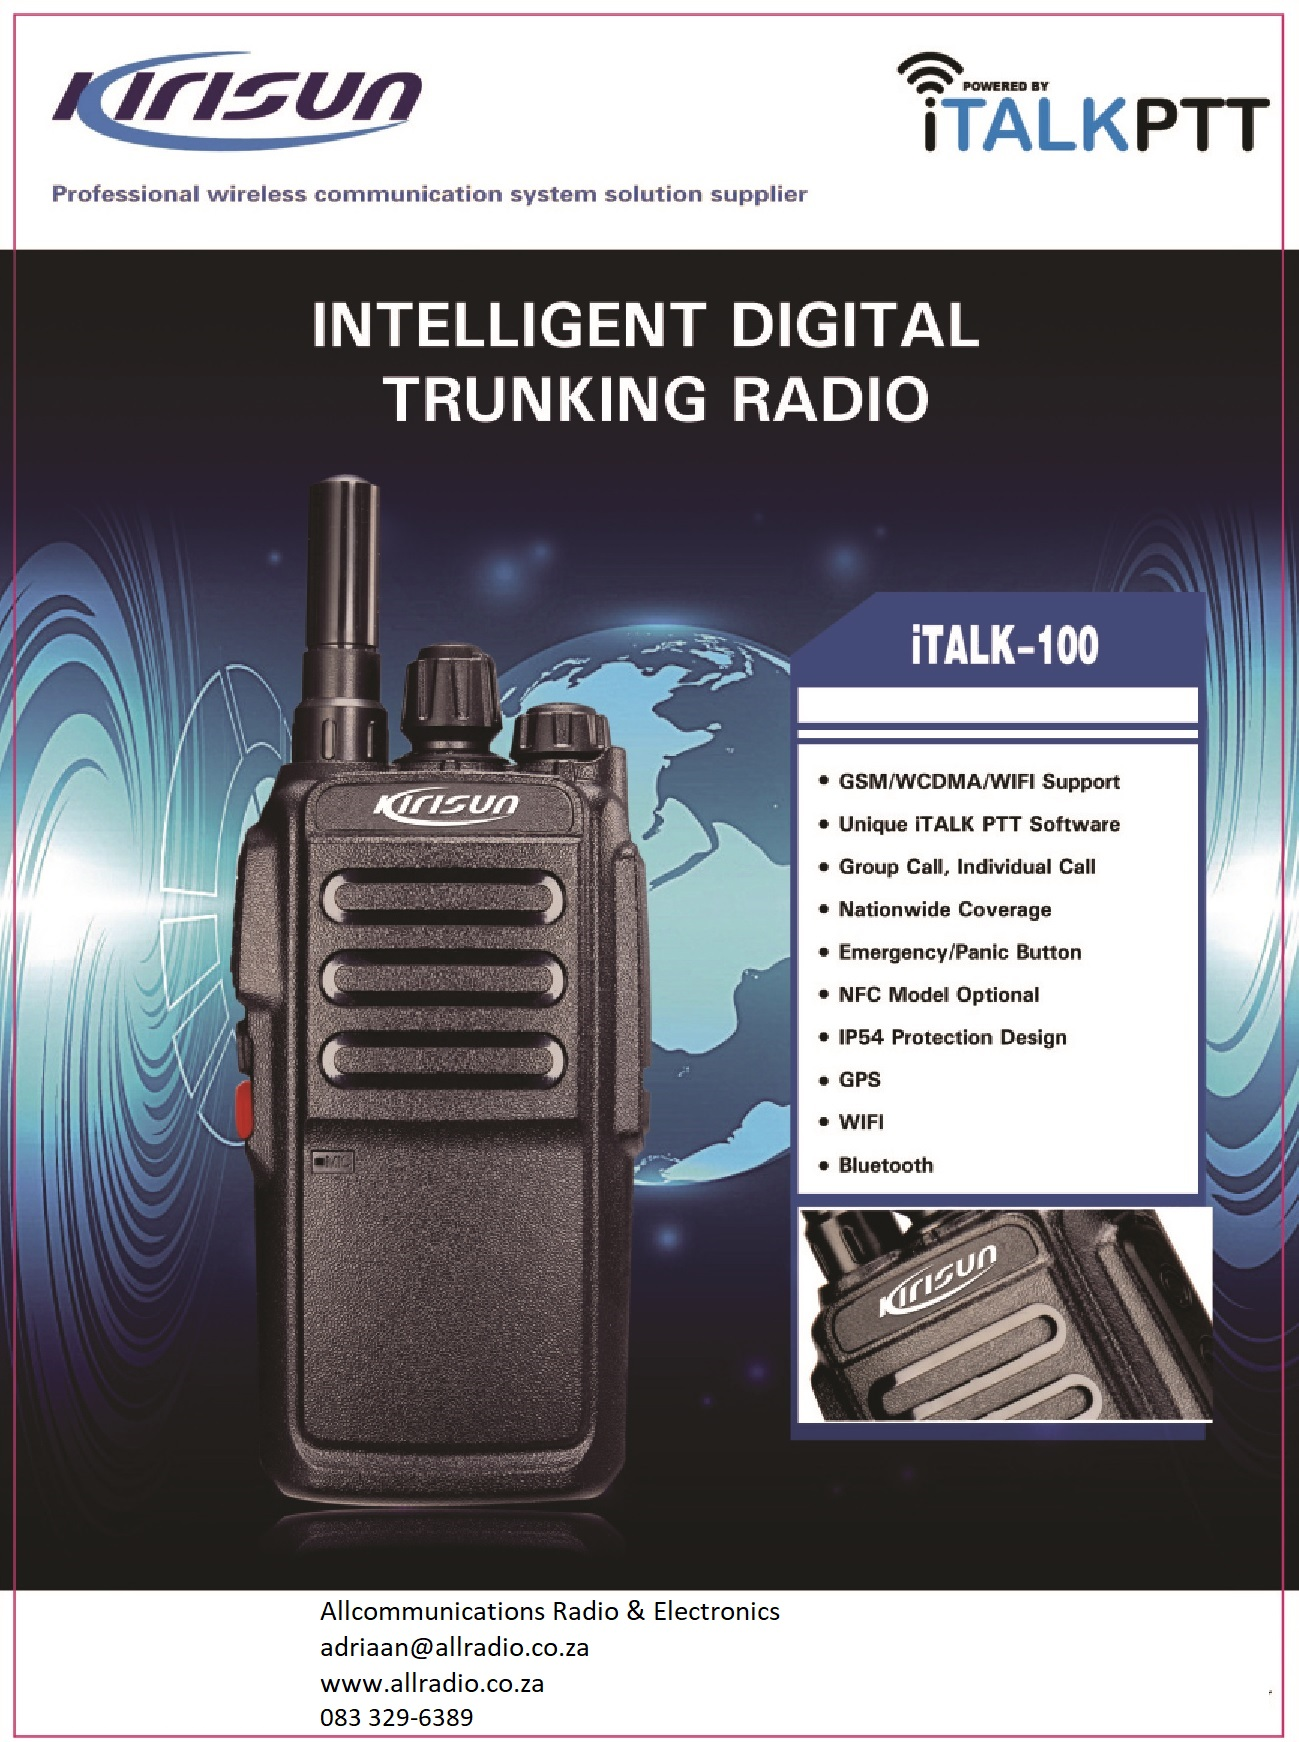 Kirisun iTalk 200 Smart PTT Trunking radio Pretoria Allcommunications Radio with wifi